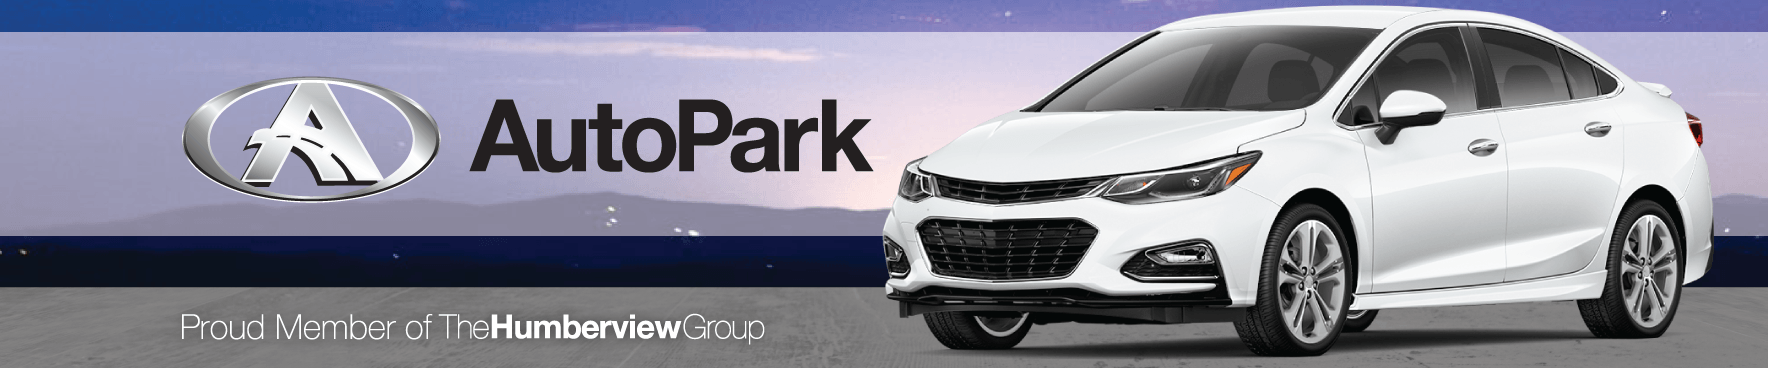 AutoPark- Largest Used Car Network in Ontario